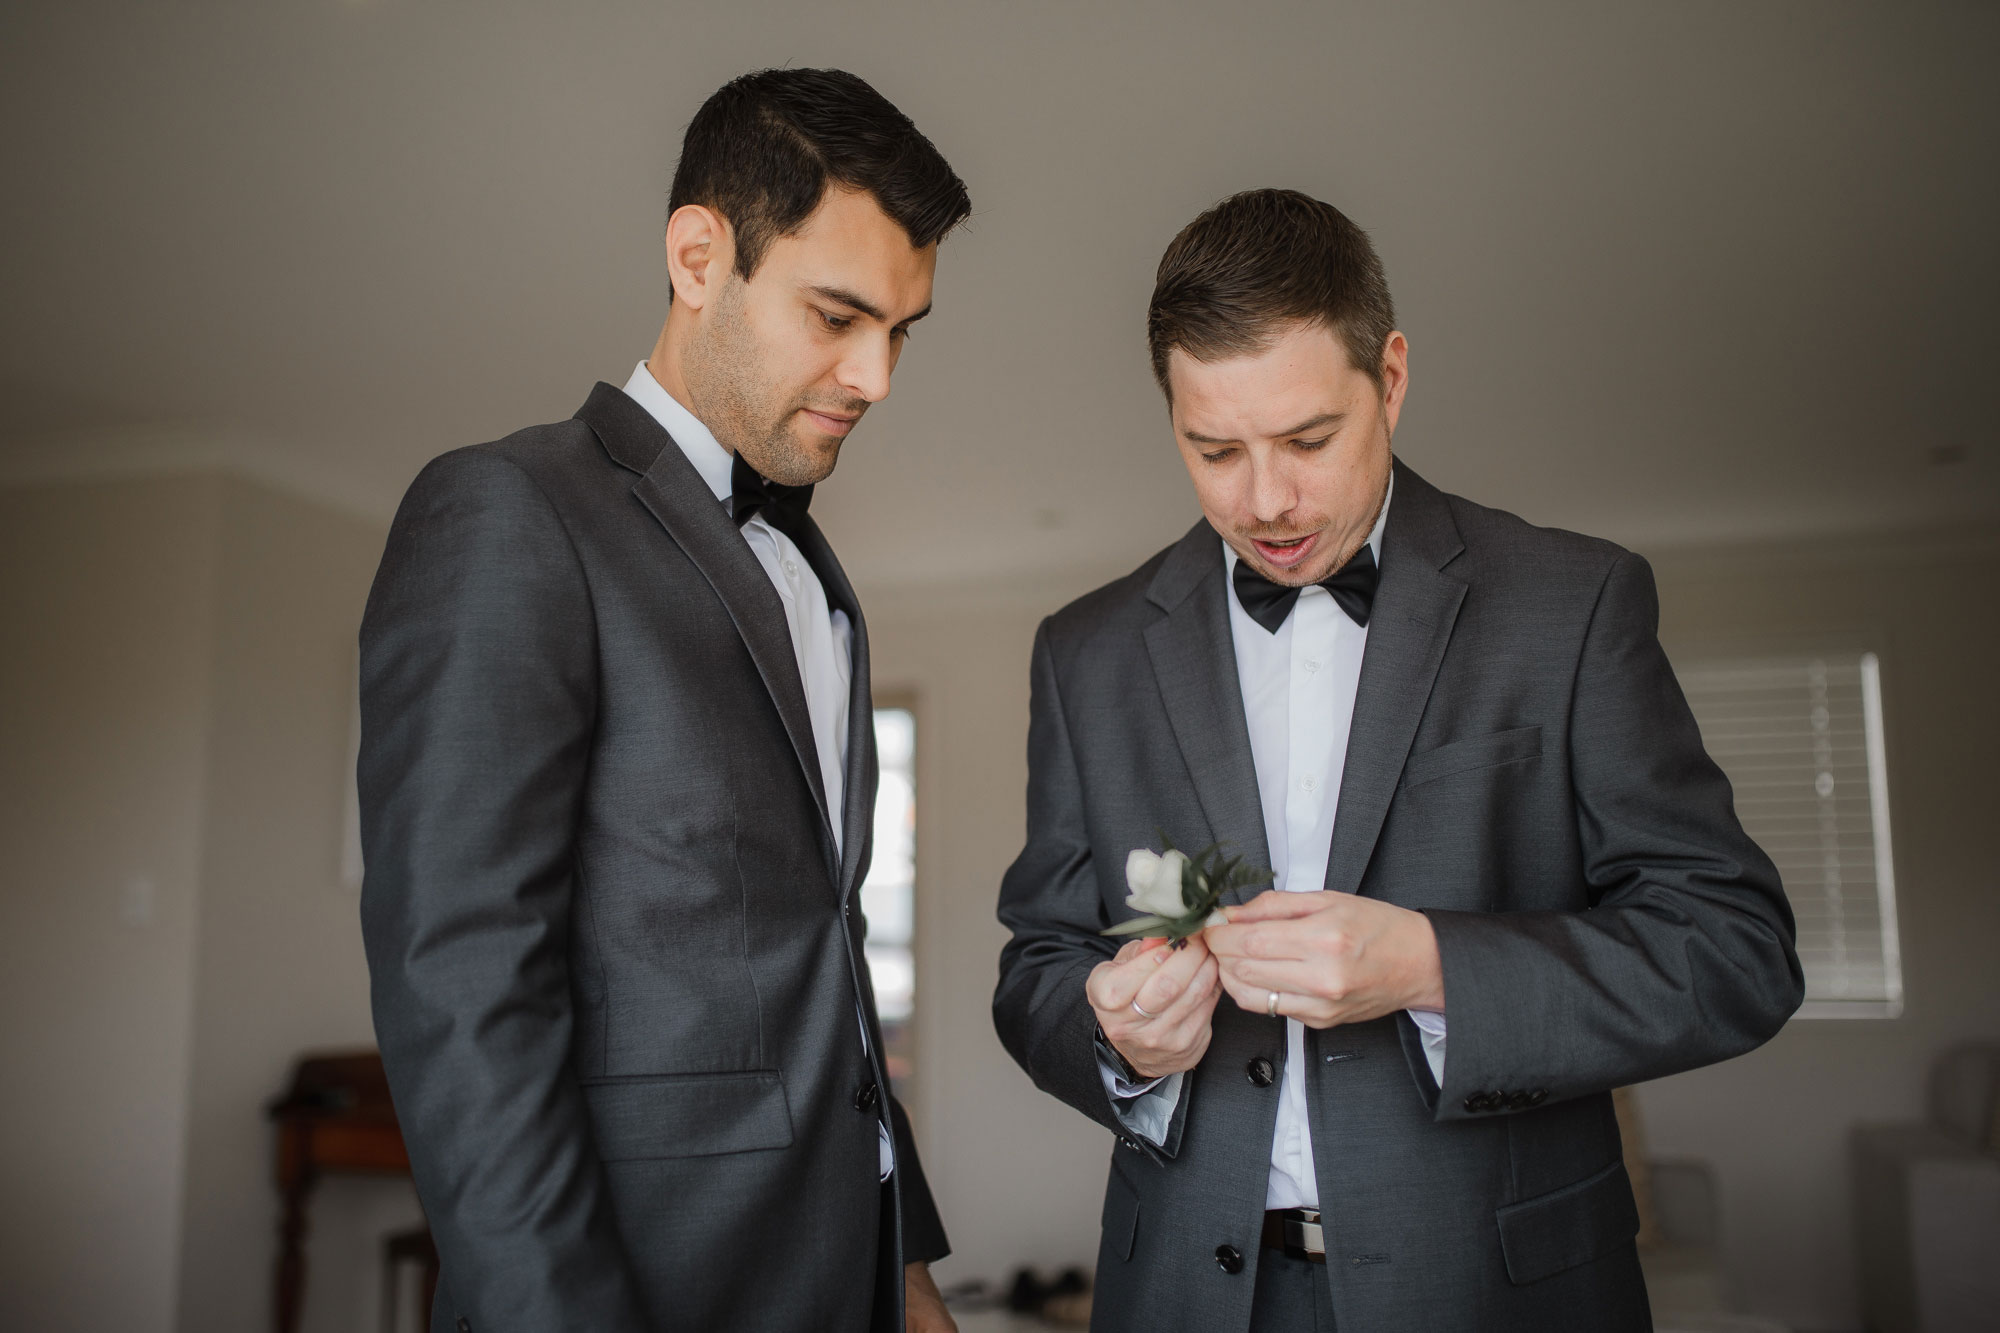 groomsmen putting on buttonhole